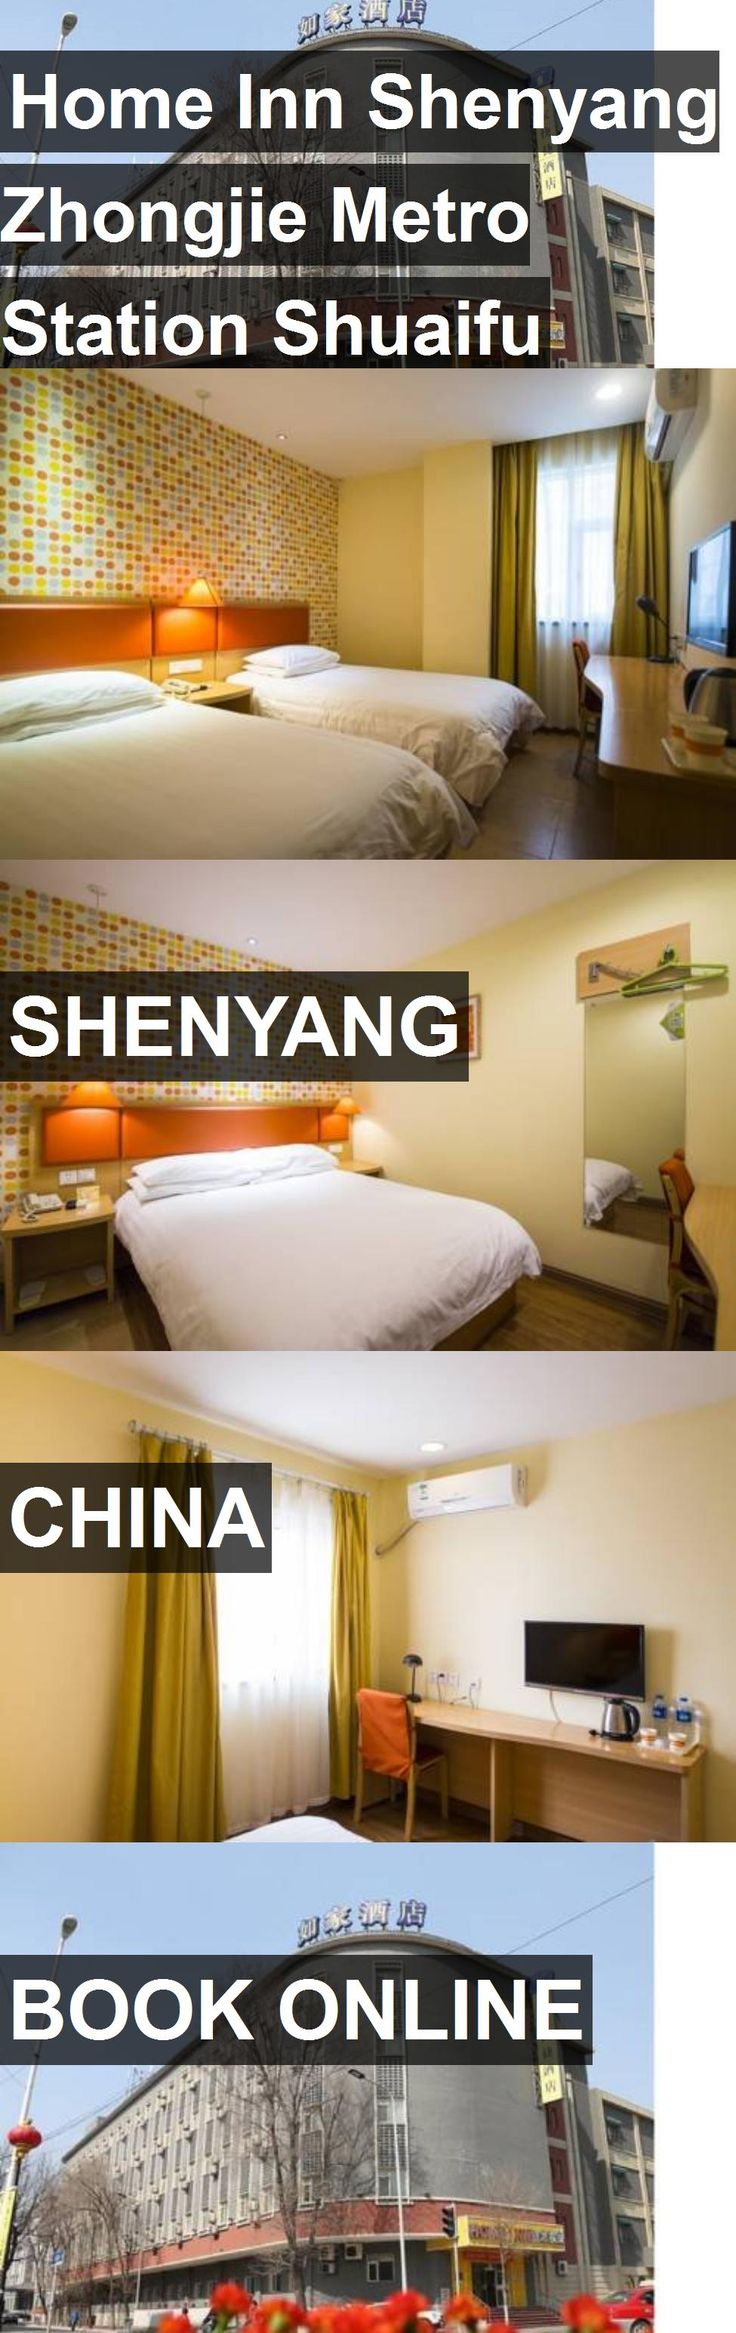 Hotel Home Inn Shenyang Zhongjie Metro Station Shuaifu in Shenyang, China. For more information, photos, reviews and best prices please follow the link. #China #Shenyang #travel #vacation #hotel